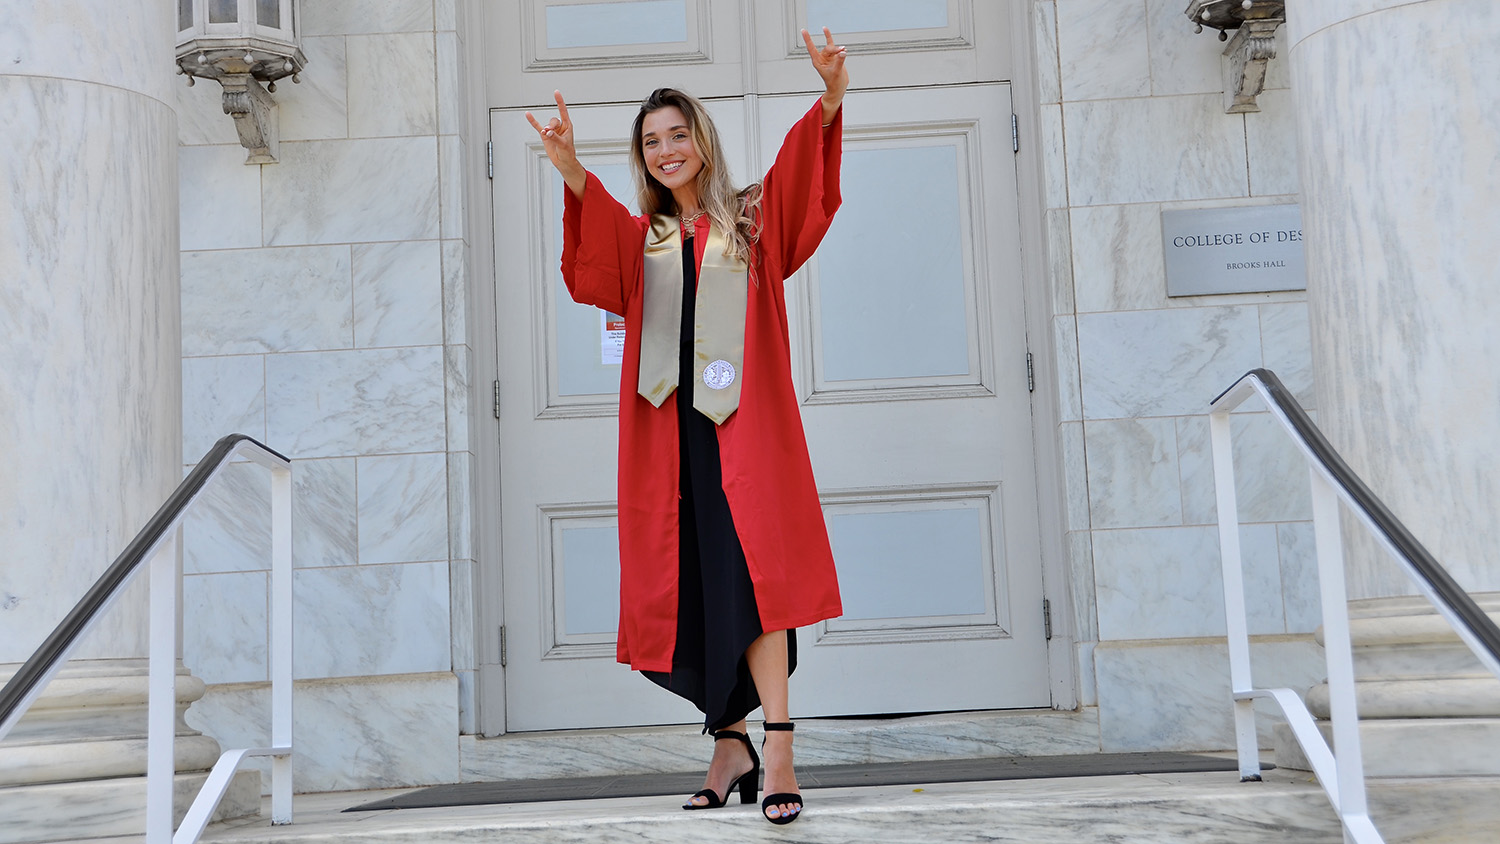 On the stone front steps of the College of Design building, Katherine Hord poses with wolf hands in her red graduation robes.